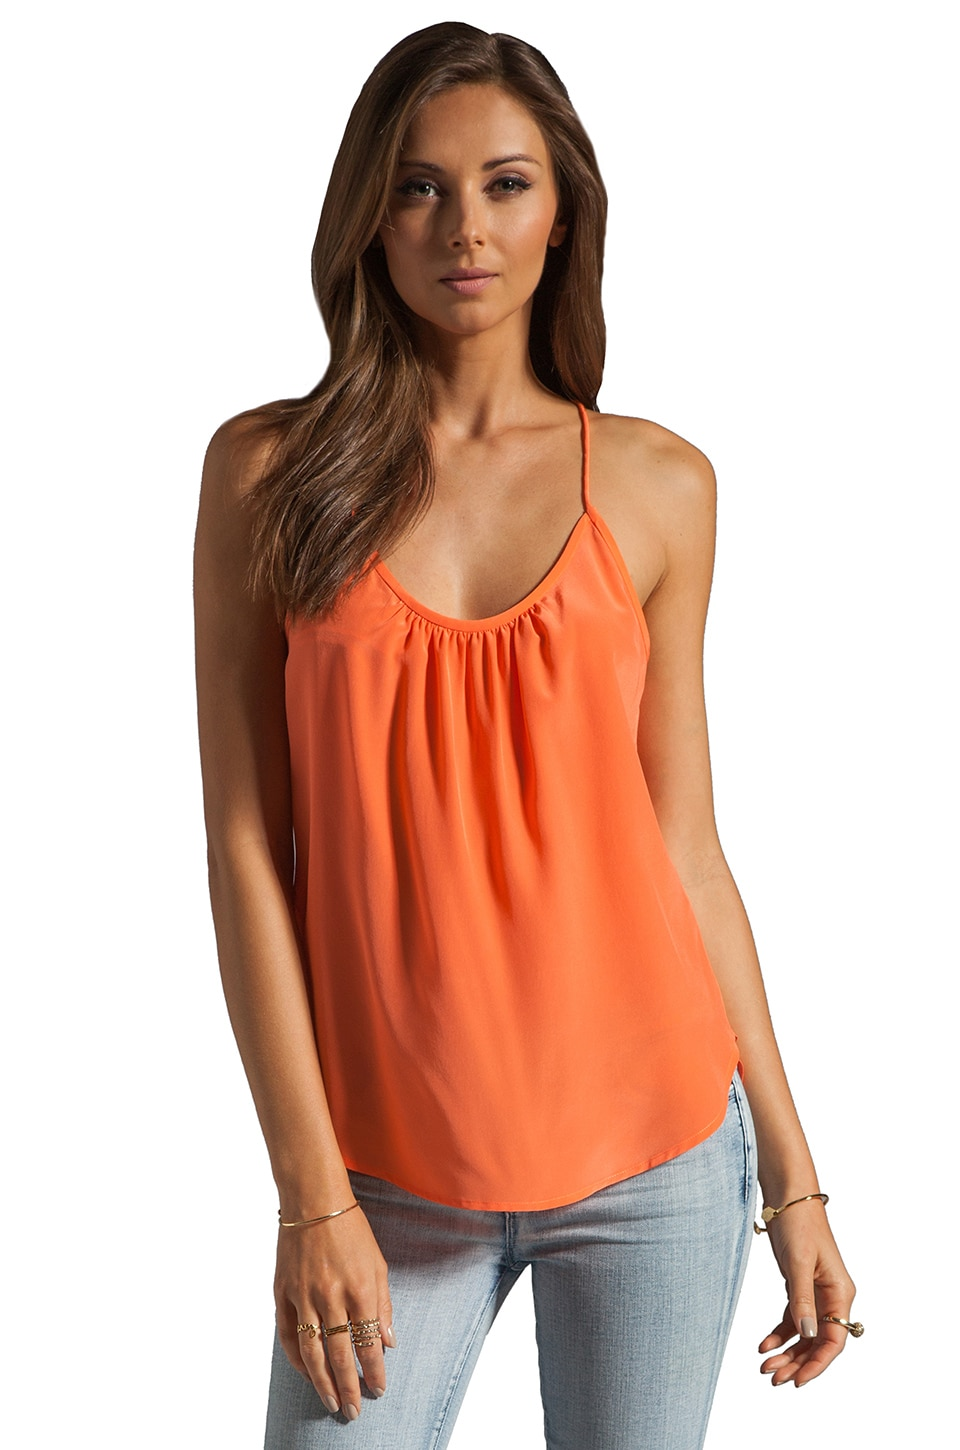 Trina Turk Solid Silk Skills Top in Orange Popsicle